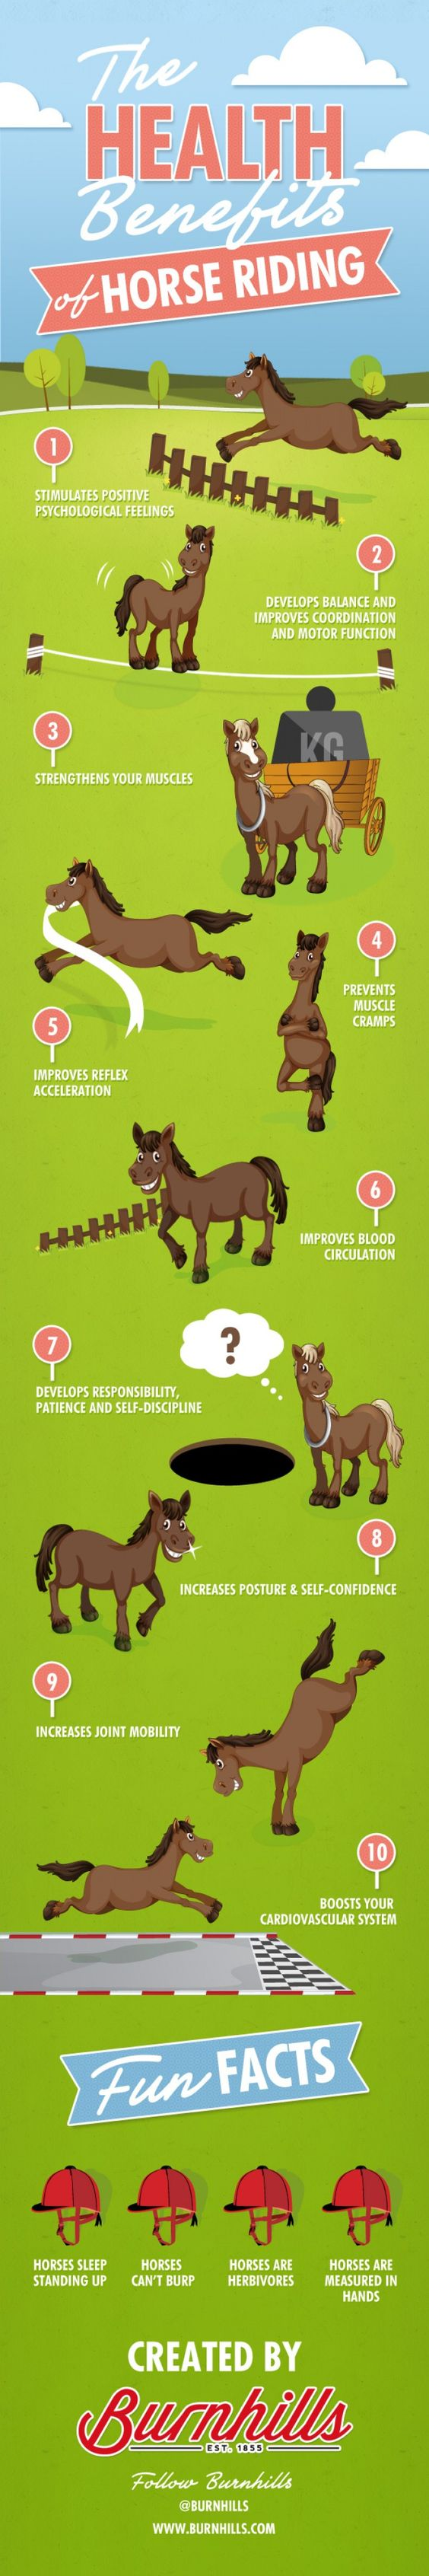 The Health Benefits Of Horse Riding